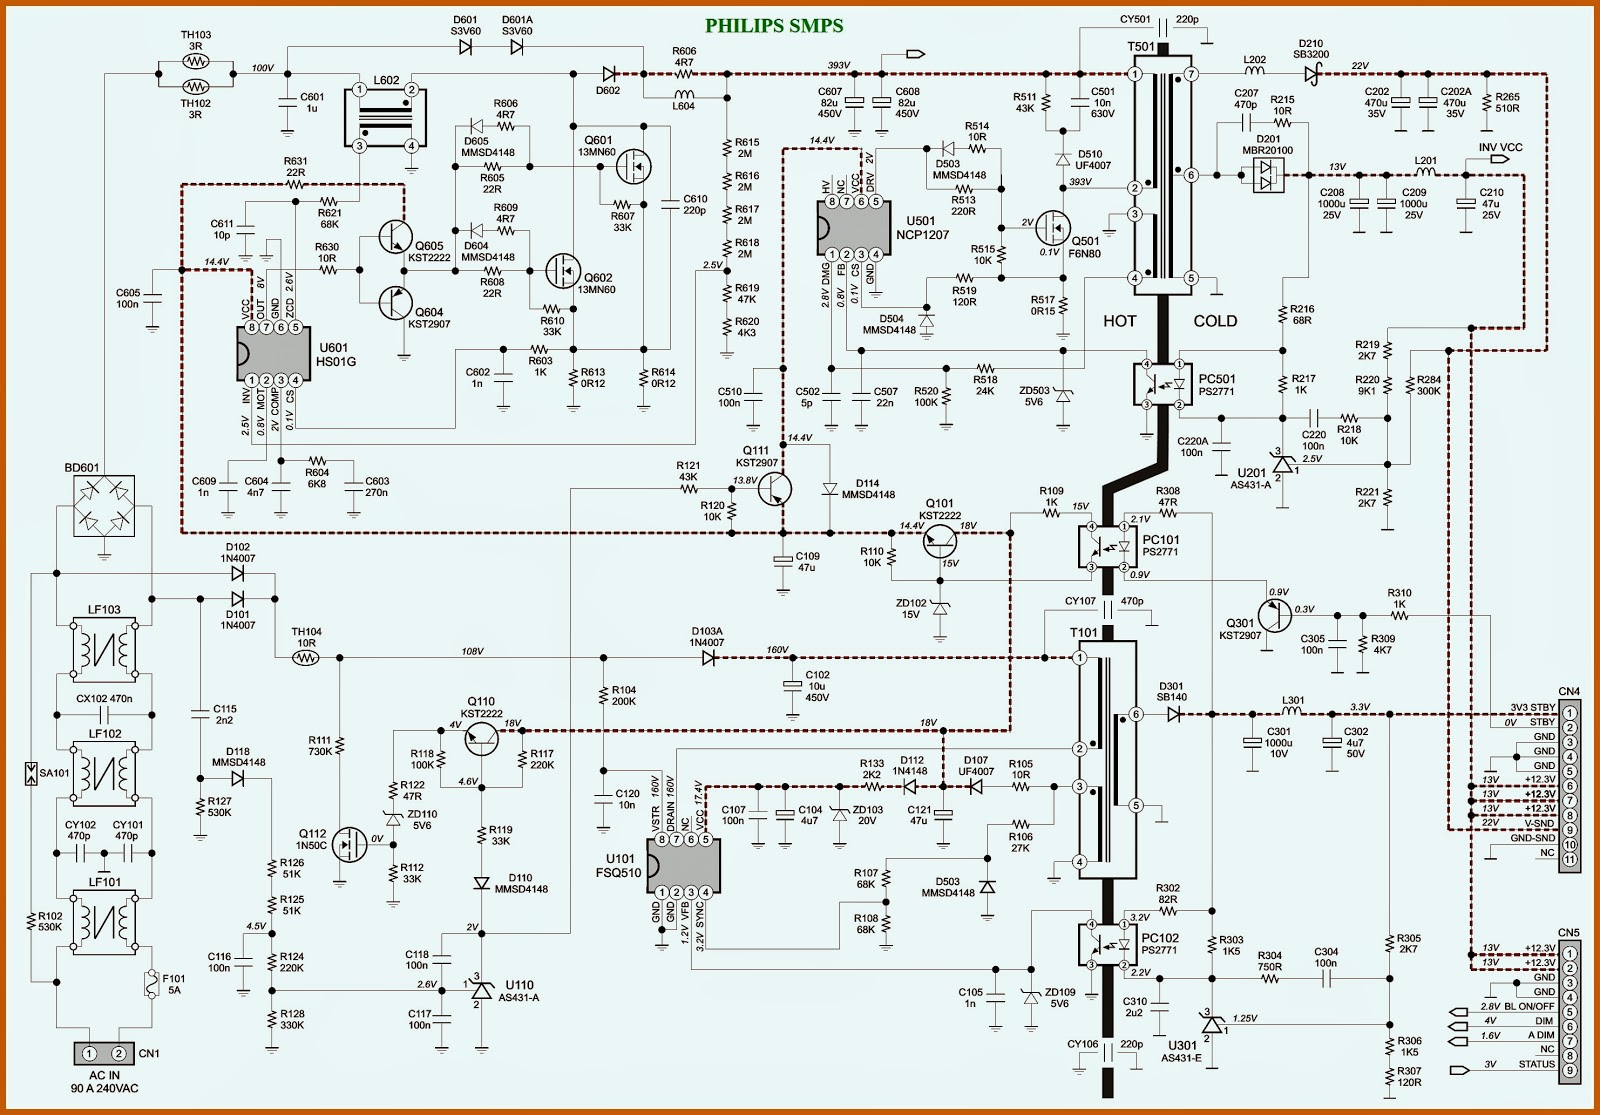 led tv schematic circuit diagram data diagram schematic led tv schematic lcd tv diagram [ 1600 x 1115 Pixel ]